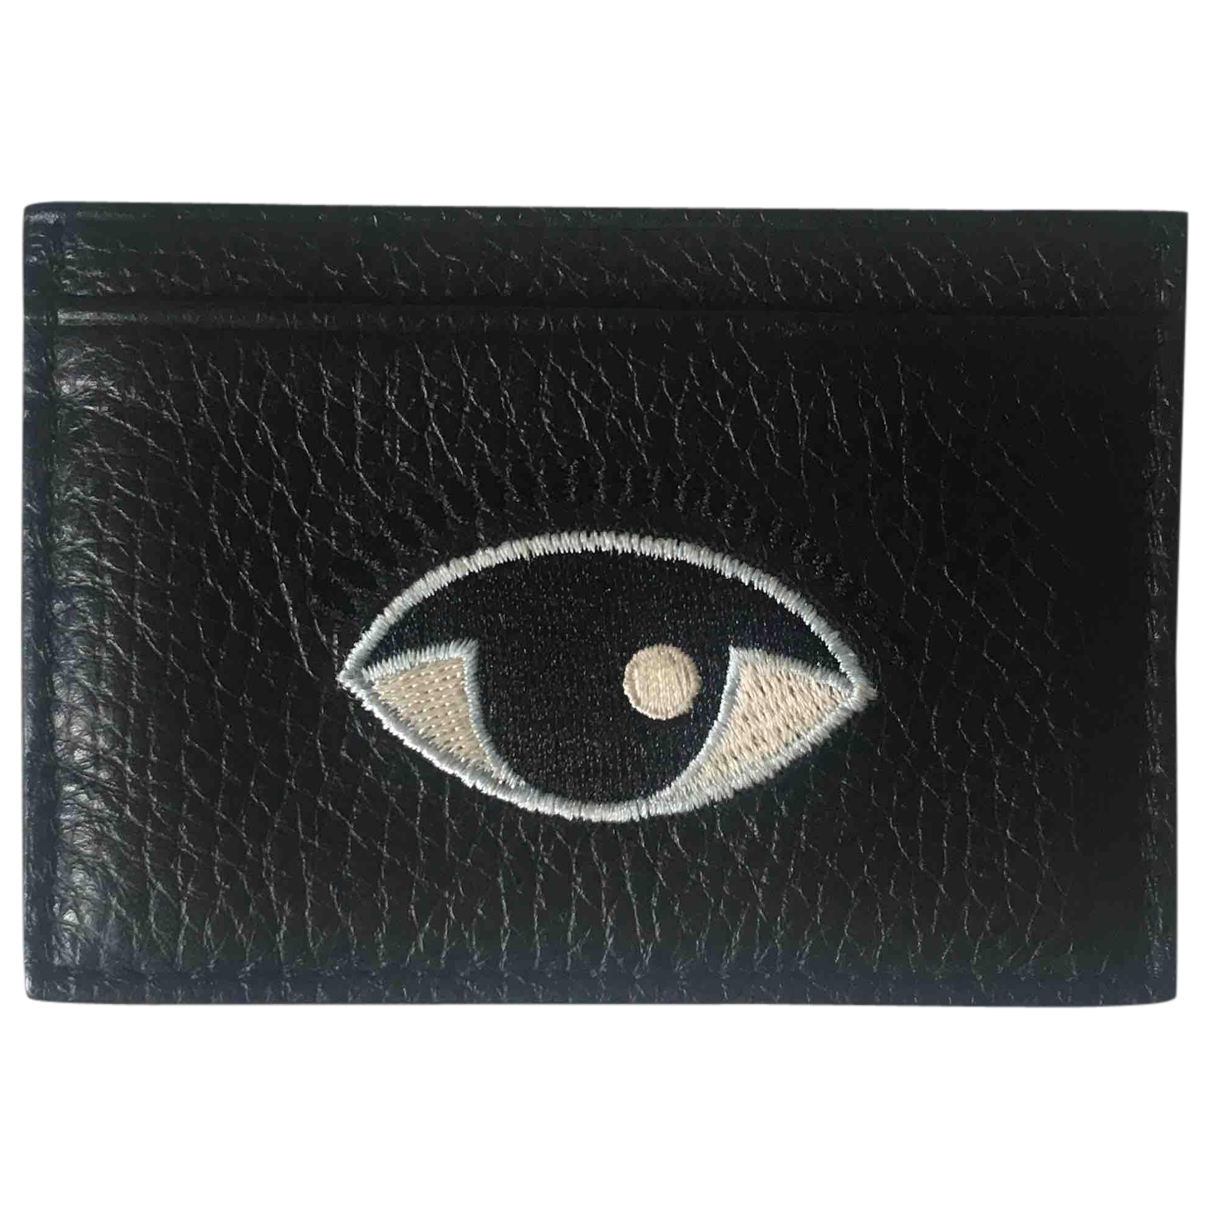 Kenzo \N Black Leather Purses, wallet & cases for Women \N